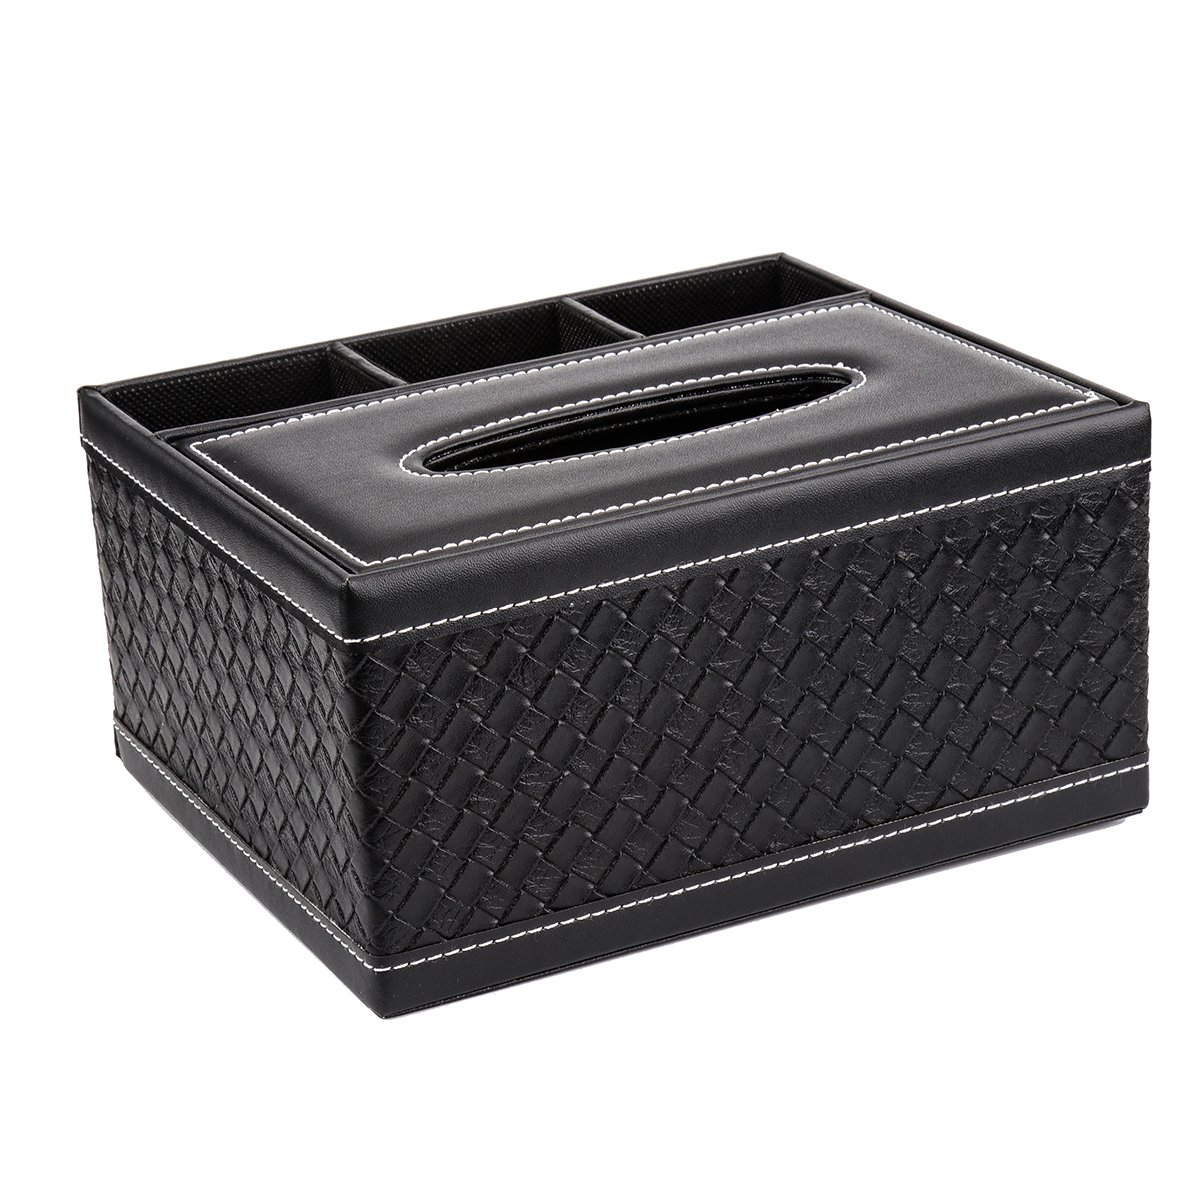 Leather Tissue Holder, Tissue Cover Holder Large Tissue Box Cover, Car office Organizer for Home Office Car Automotive Decoration, 8.6x6.6x3.9inch Weiye